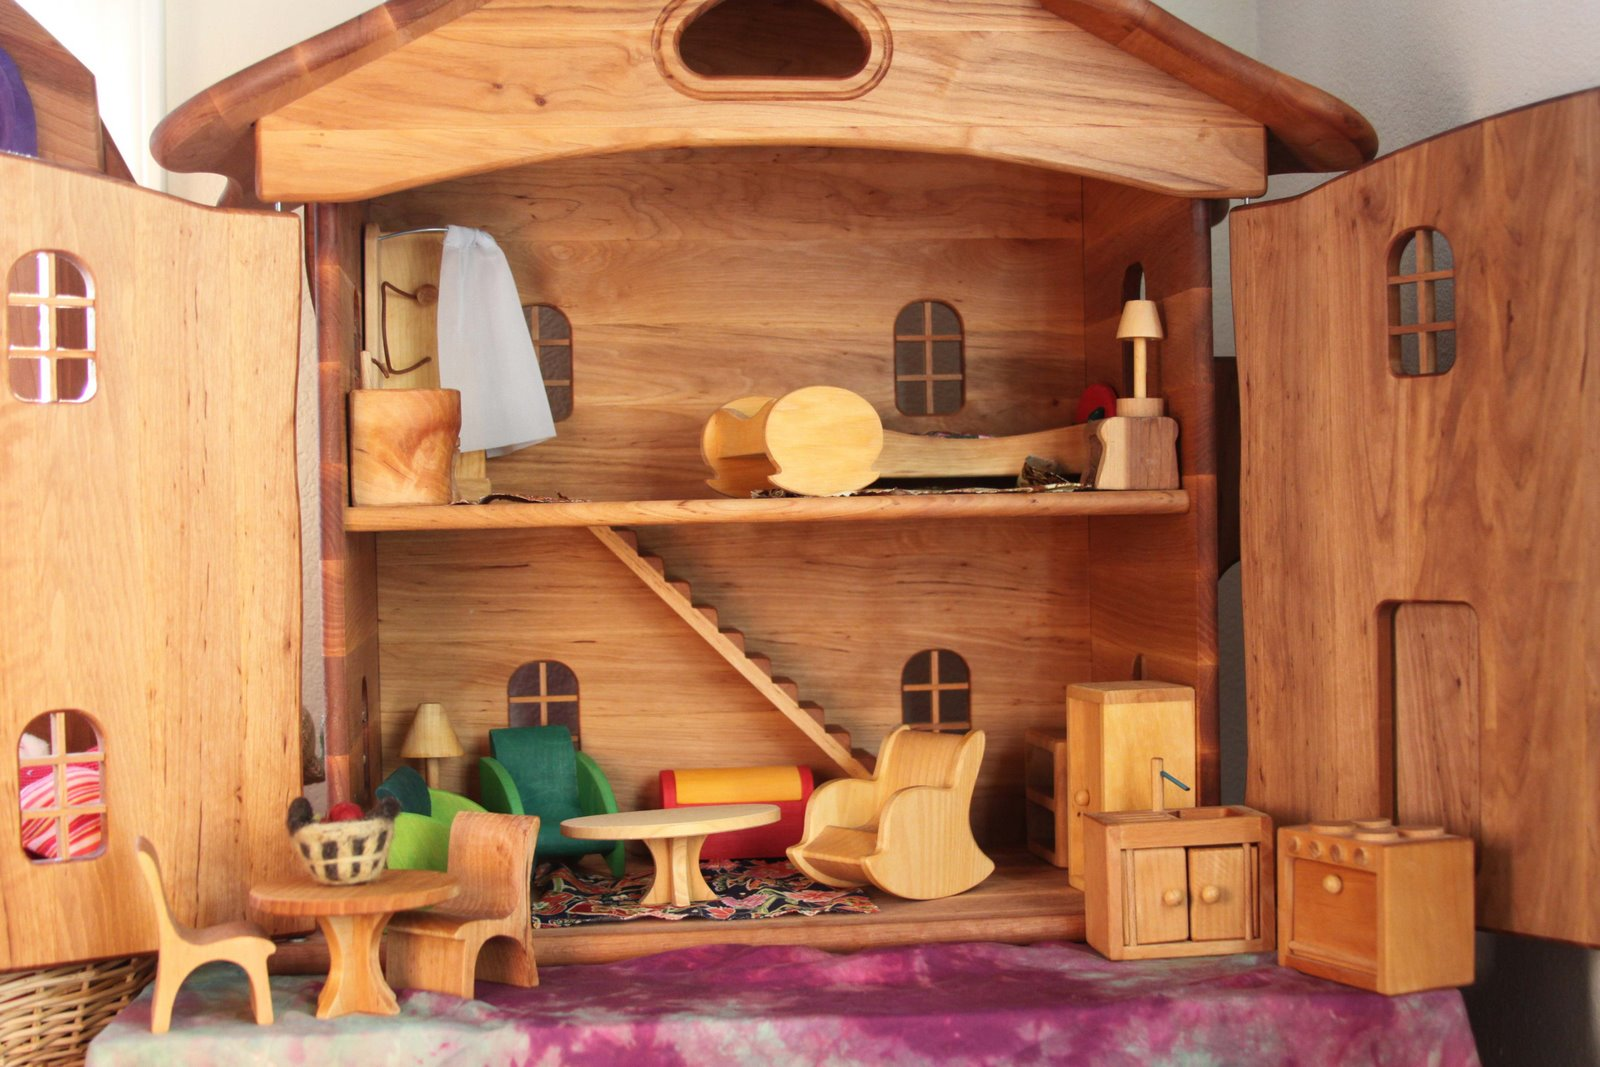 Dolls And Furniture To Fit Drewart House Mothering Forums